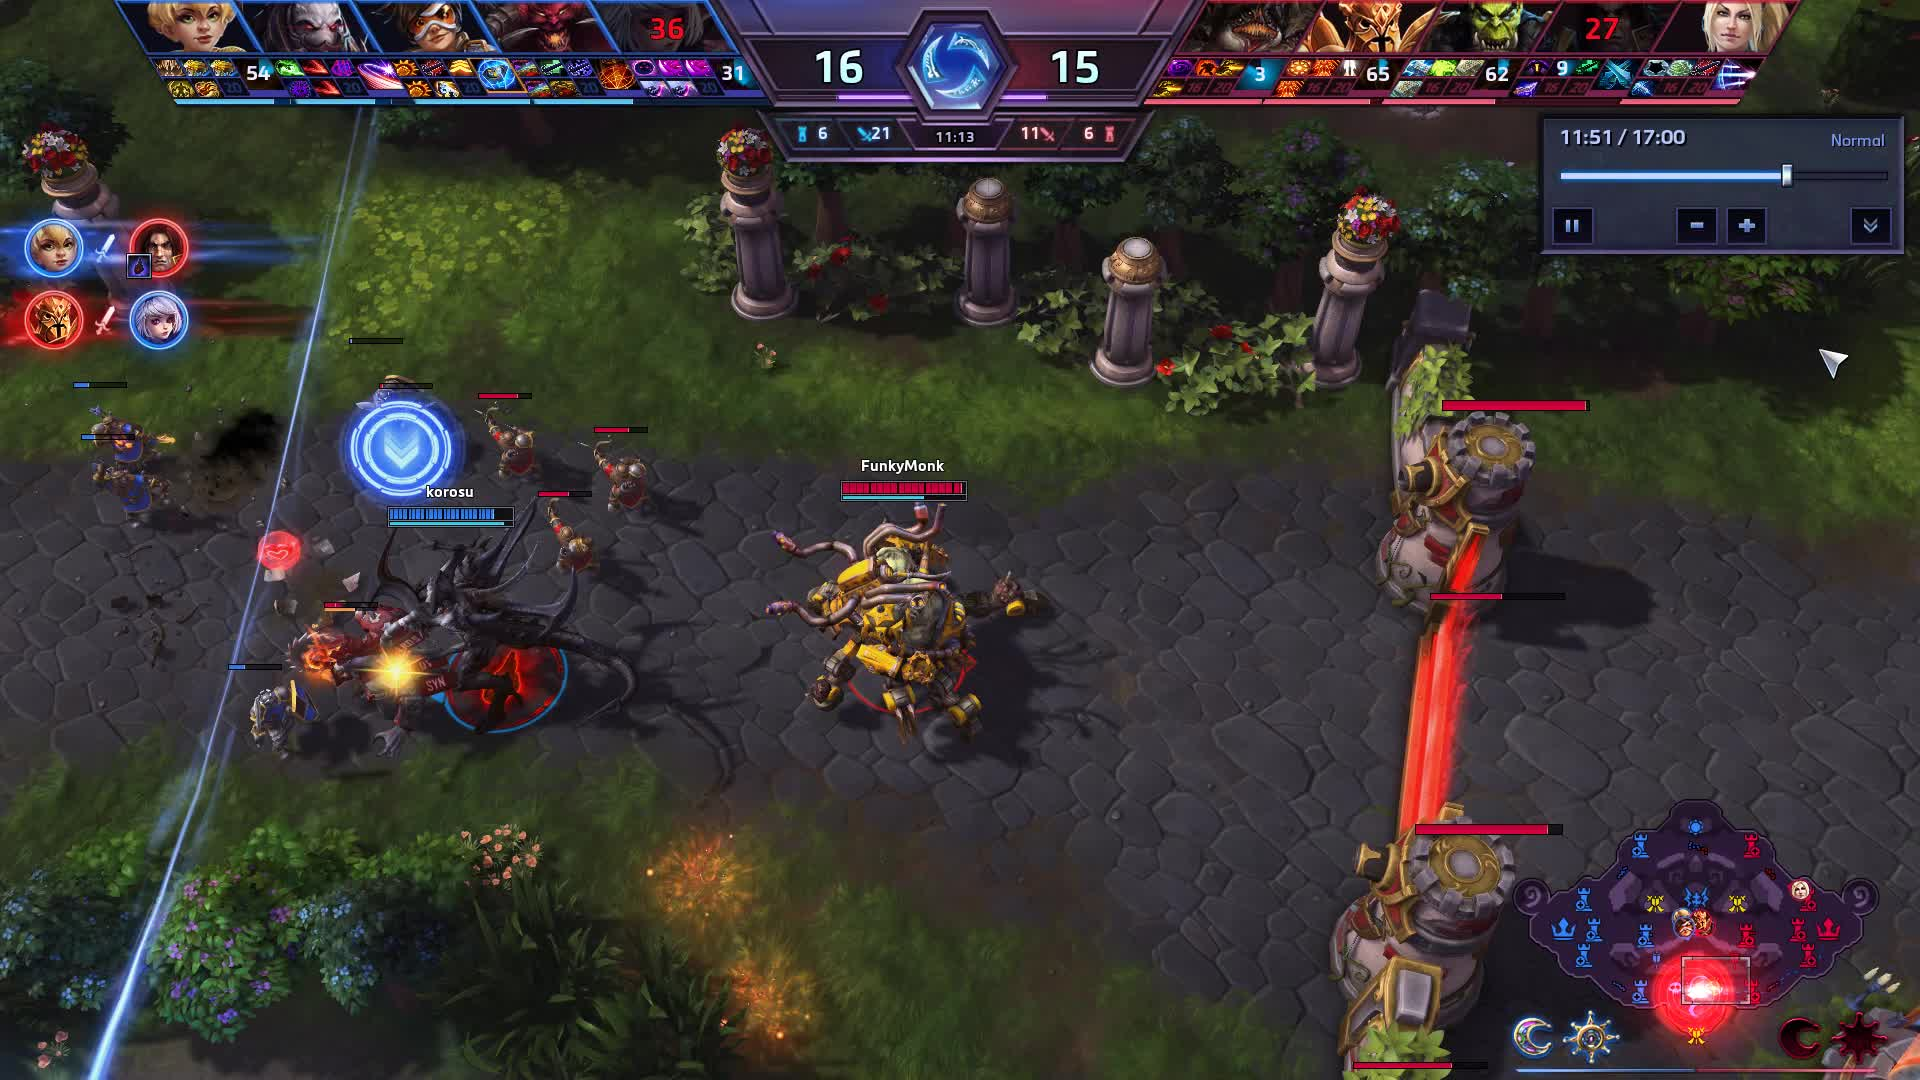 heroesofthestorm, Heroes of the Storm 2019.02.23 - 02.56.41.03 GIFs